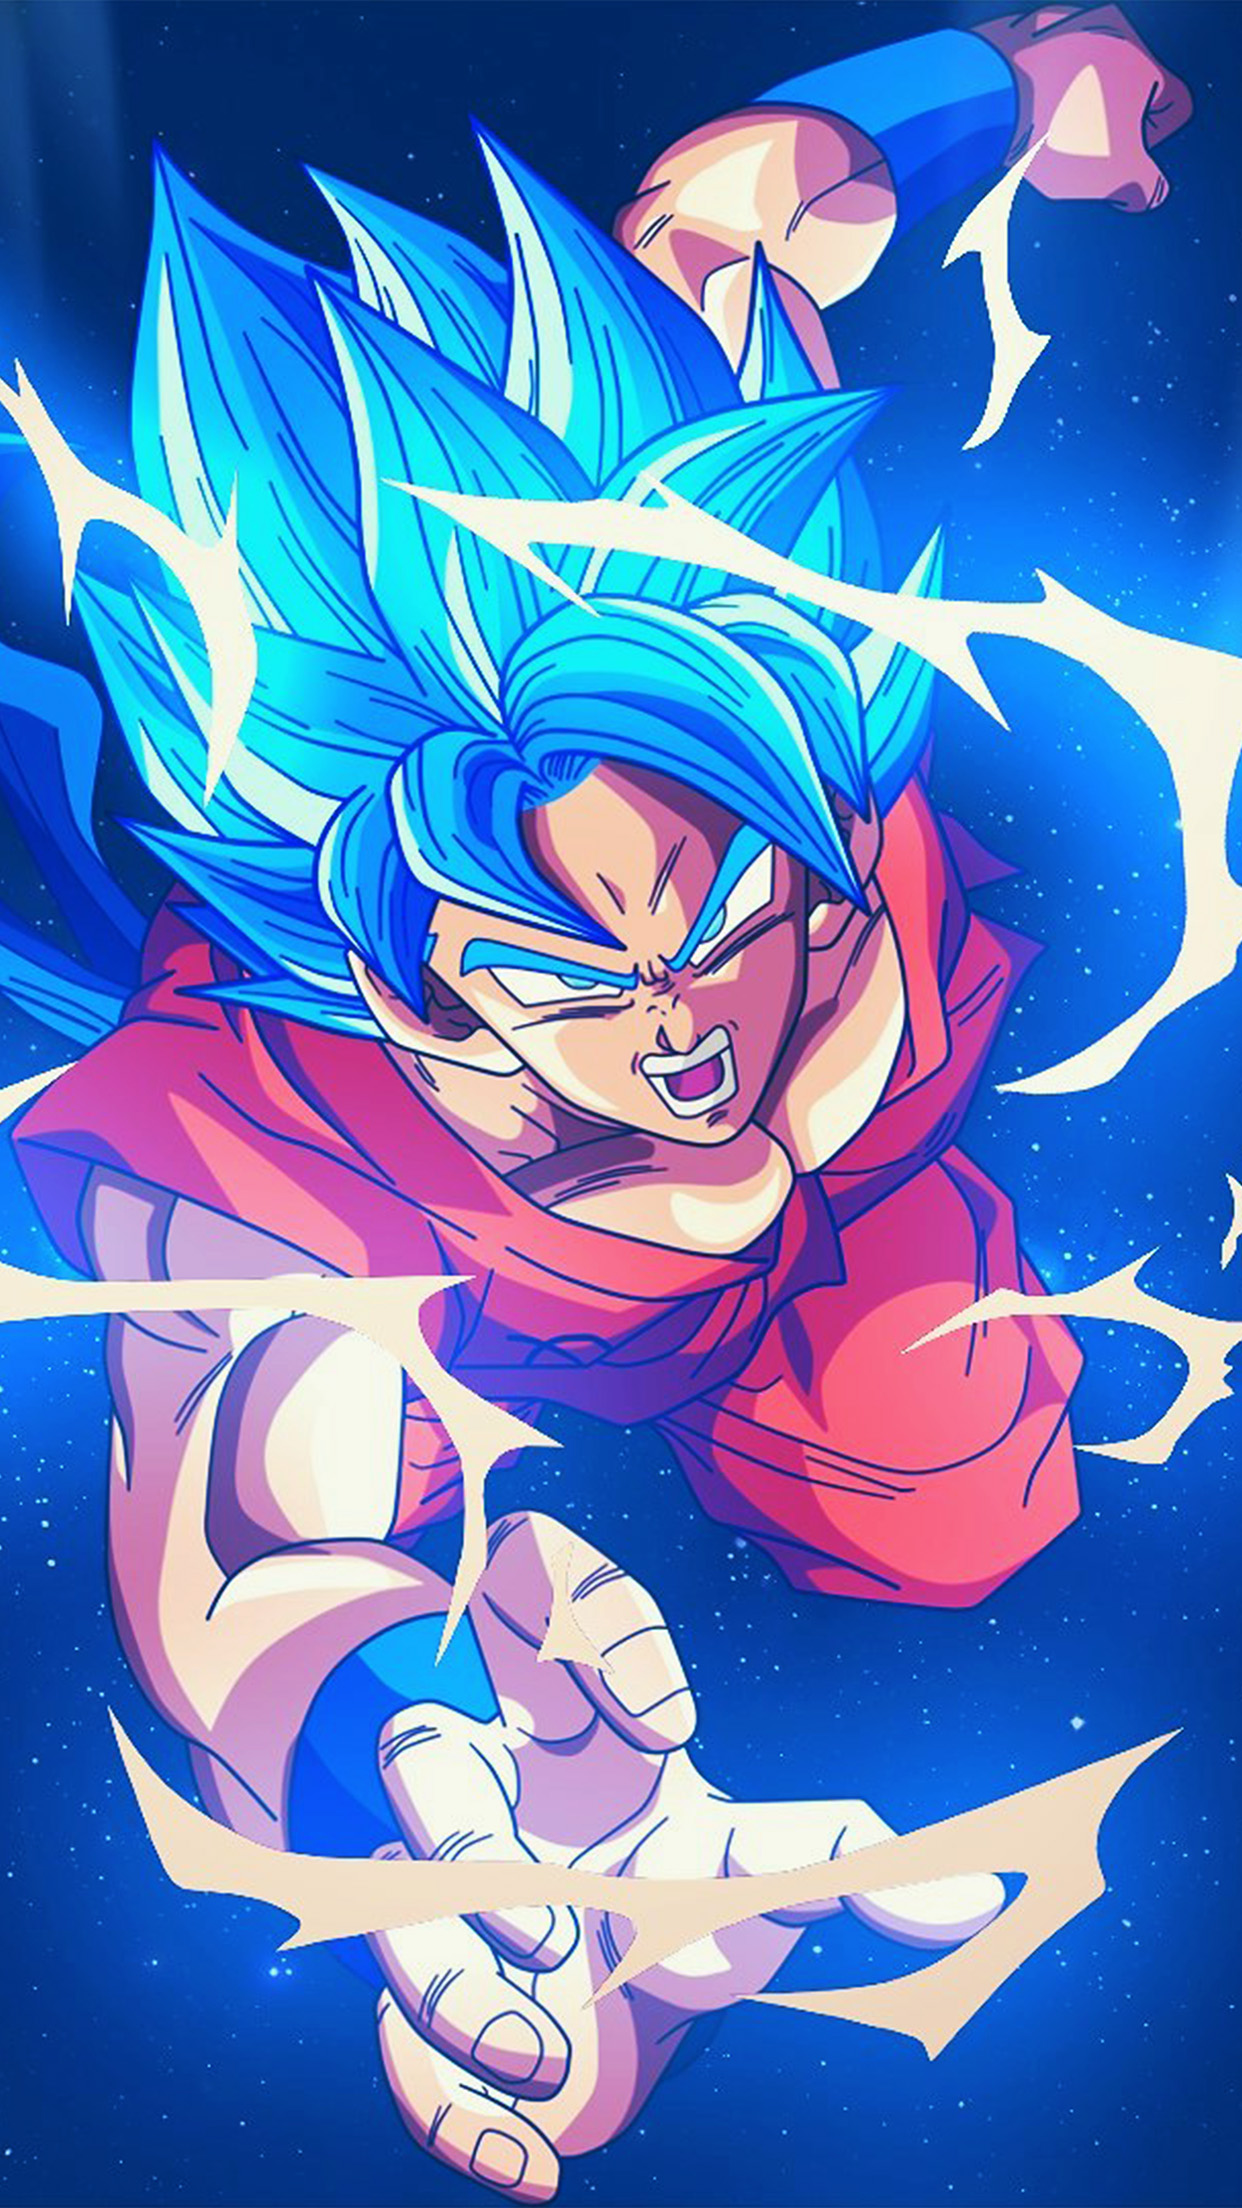 Bc55 Dragonball Goku Blue Art Illustration Anime